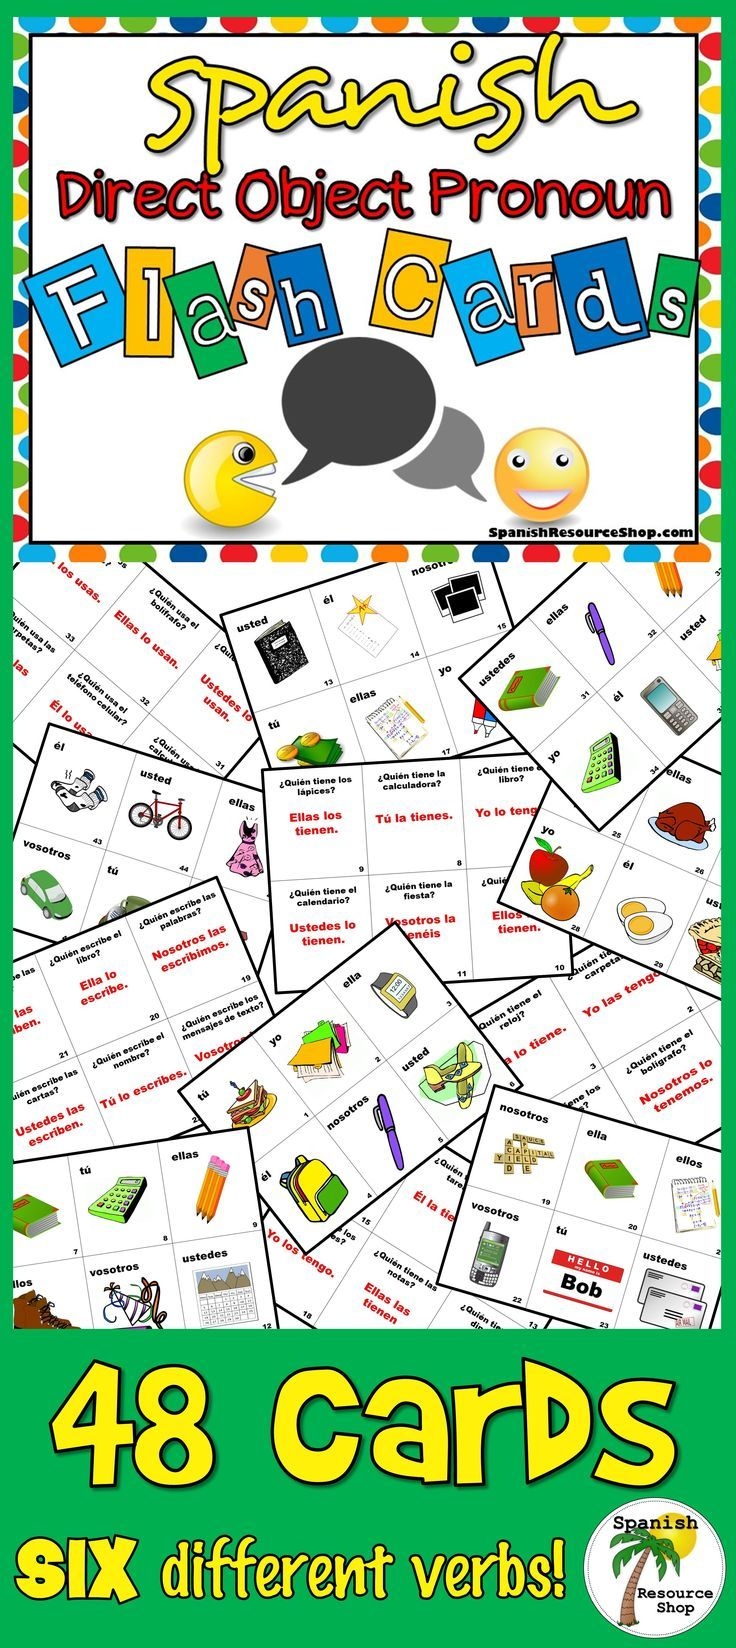 Spanish Direct Object Pronoun Flashcards | Spanish, Worksheets and ...